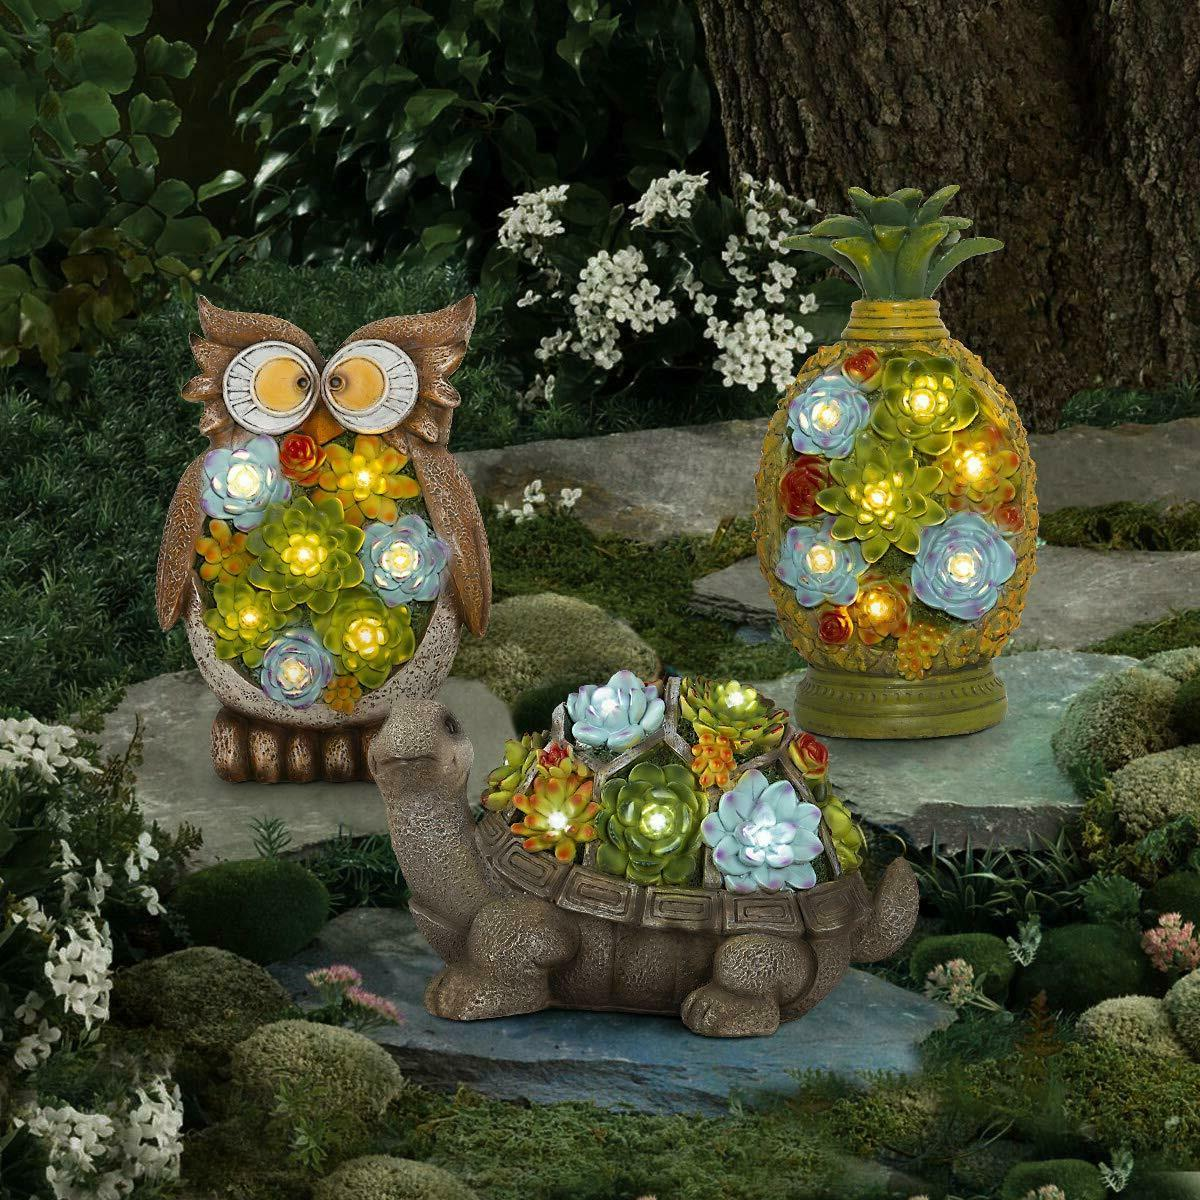 GIGALUMI Solar Light Outdoor Decor Lights